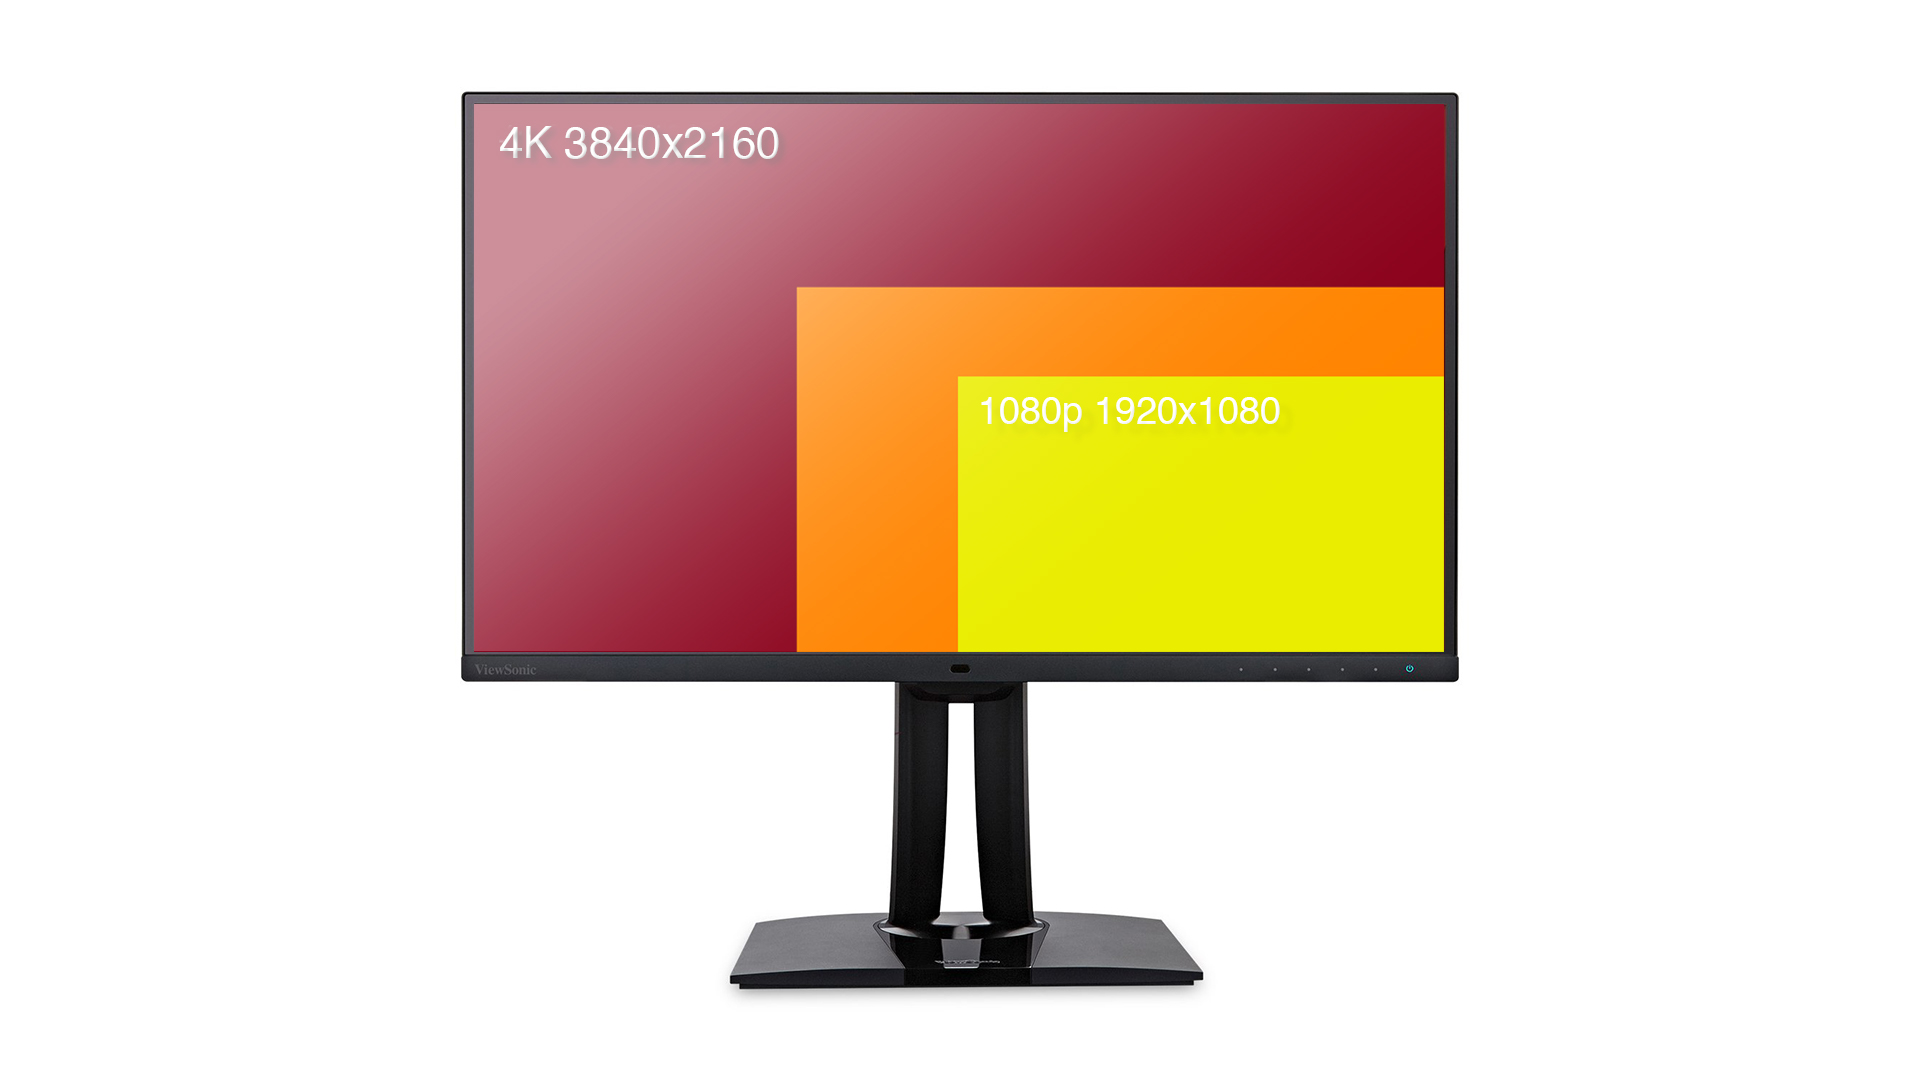 What resolution monitor should you buy as a photographer \u2014 1080p or